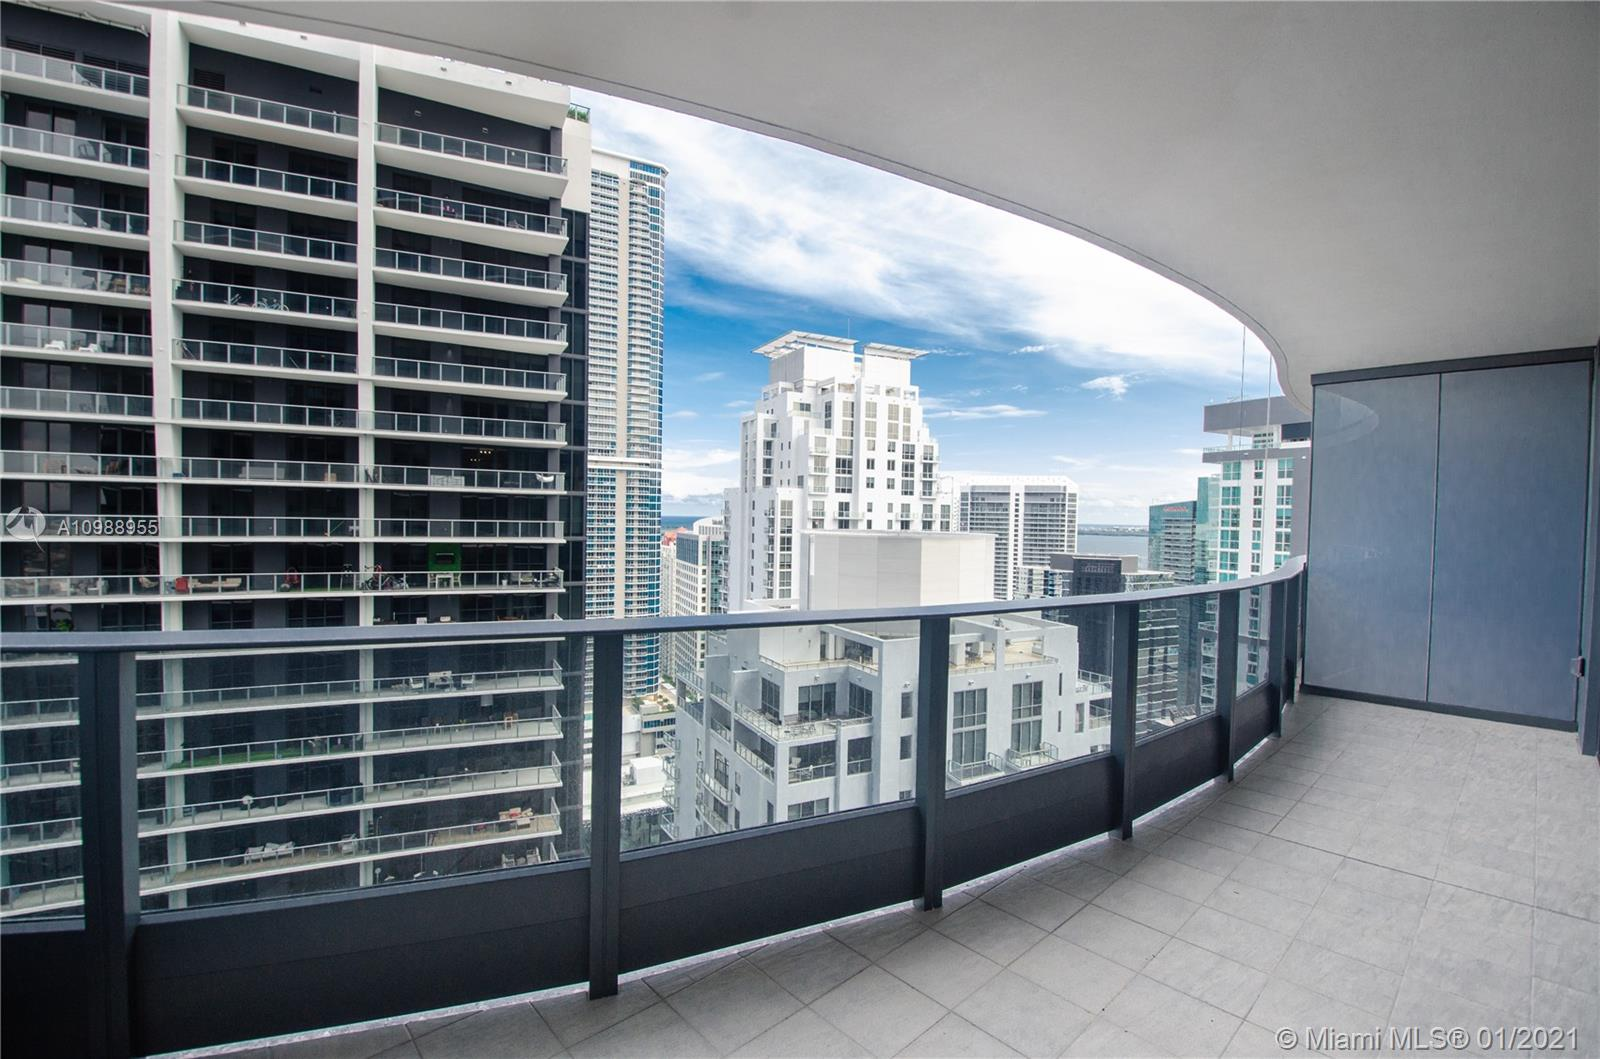 Gorgeous fully furnished Unit with amazing 2 Beds w/2 full Baths. The kitchen features all Miele appliances & cooking island. Marble in baths, separate tub & shower; energy efficient impact resistant floor to ceiling windows and an enhanced insulation sound proofing between units; stunning views of the Miami's skyline. Amenities include the 64th floor rooftop pool with a spa, Steam, sauna, and locker facilities and 6,300-square-foot gym with a Pilates, yoga, aerobics studio, and a juice bar. Includes a lap pool and children's pool on the 18th floor, a movie theater, billiards room, and electric car charging stations. Concierge